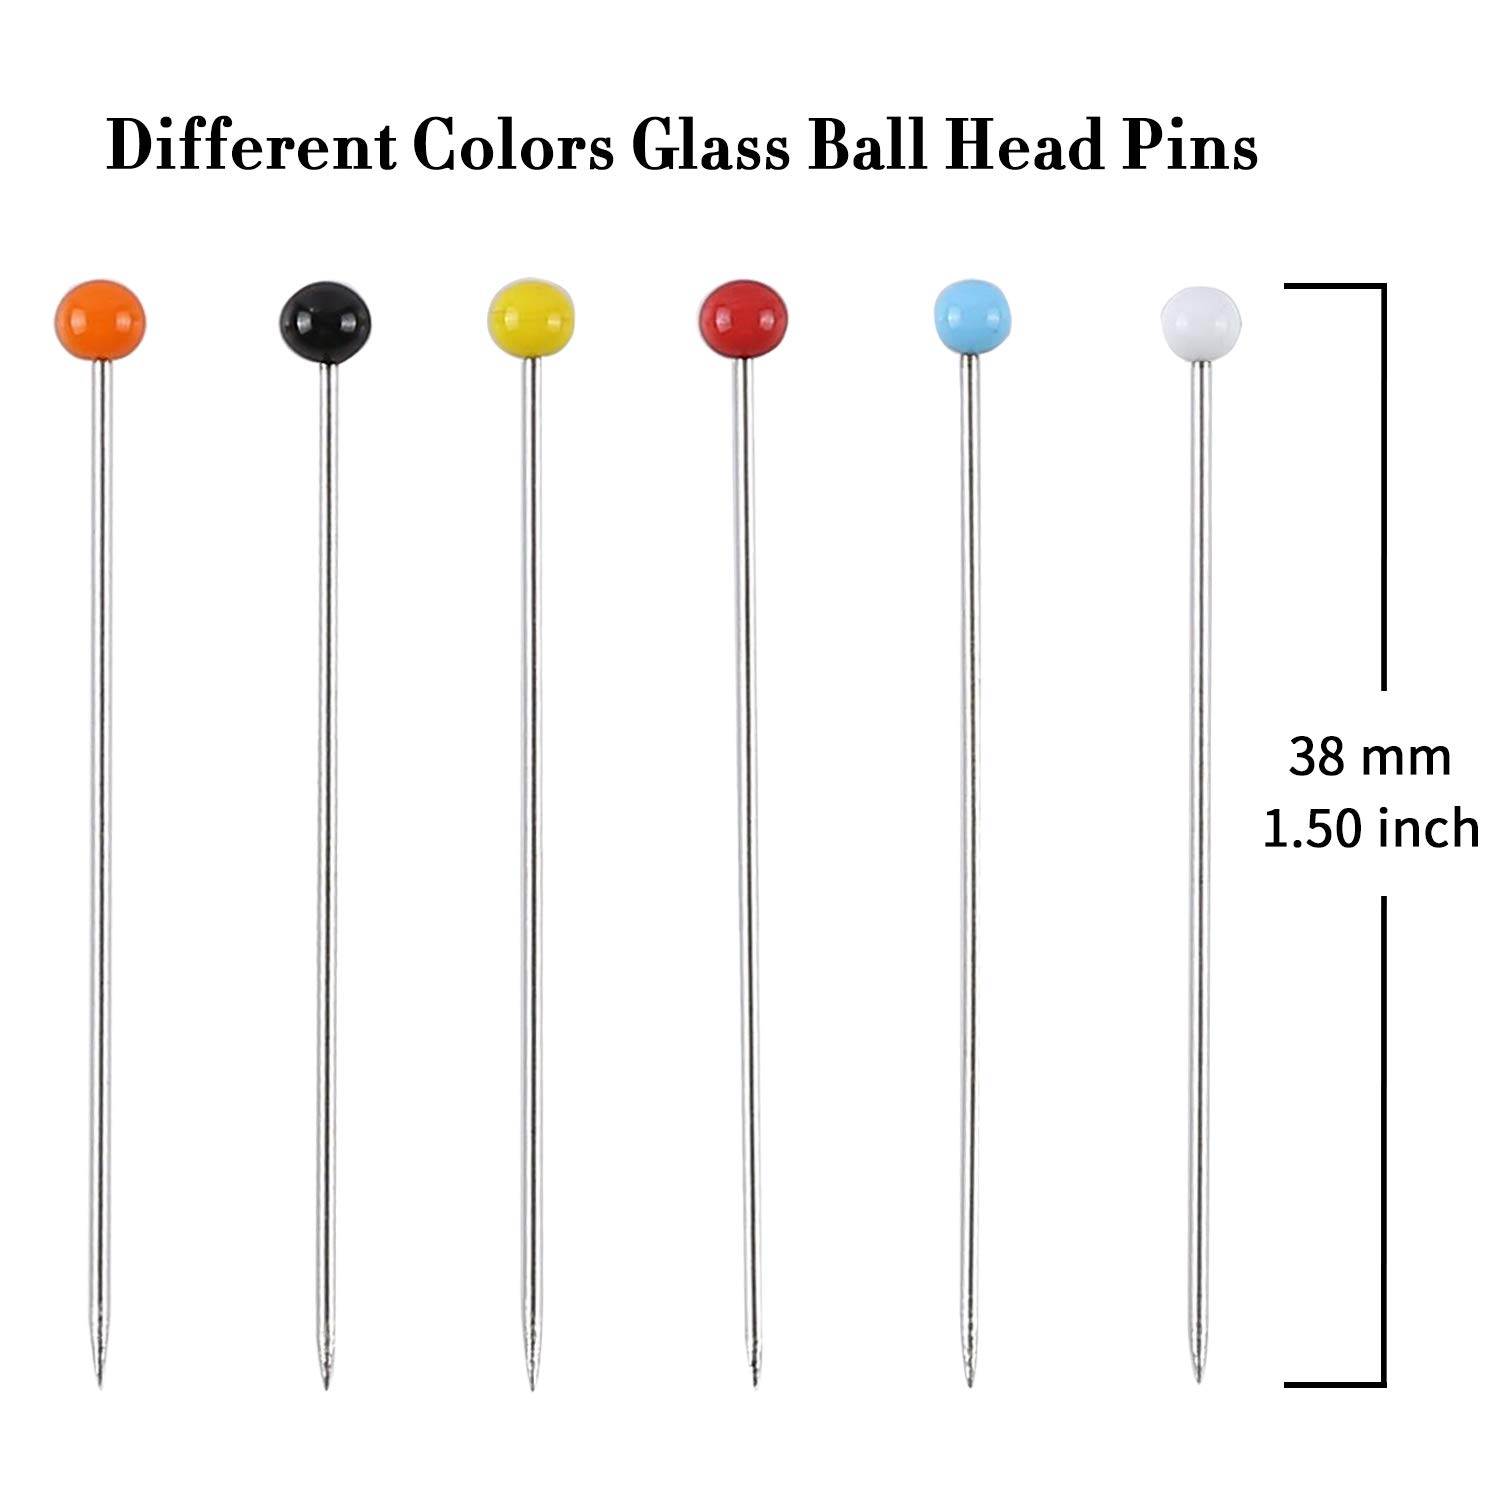 Pin Cushion and Soft Tape Measure for Dressmaking Jewelry Components Flower Decoration Perzodo 250 Pieces Sewing Pins with Color Glass Ball Head Pins Including Sewing Seam Ripper